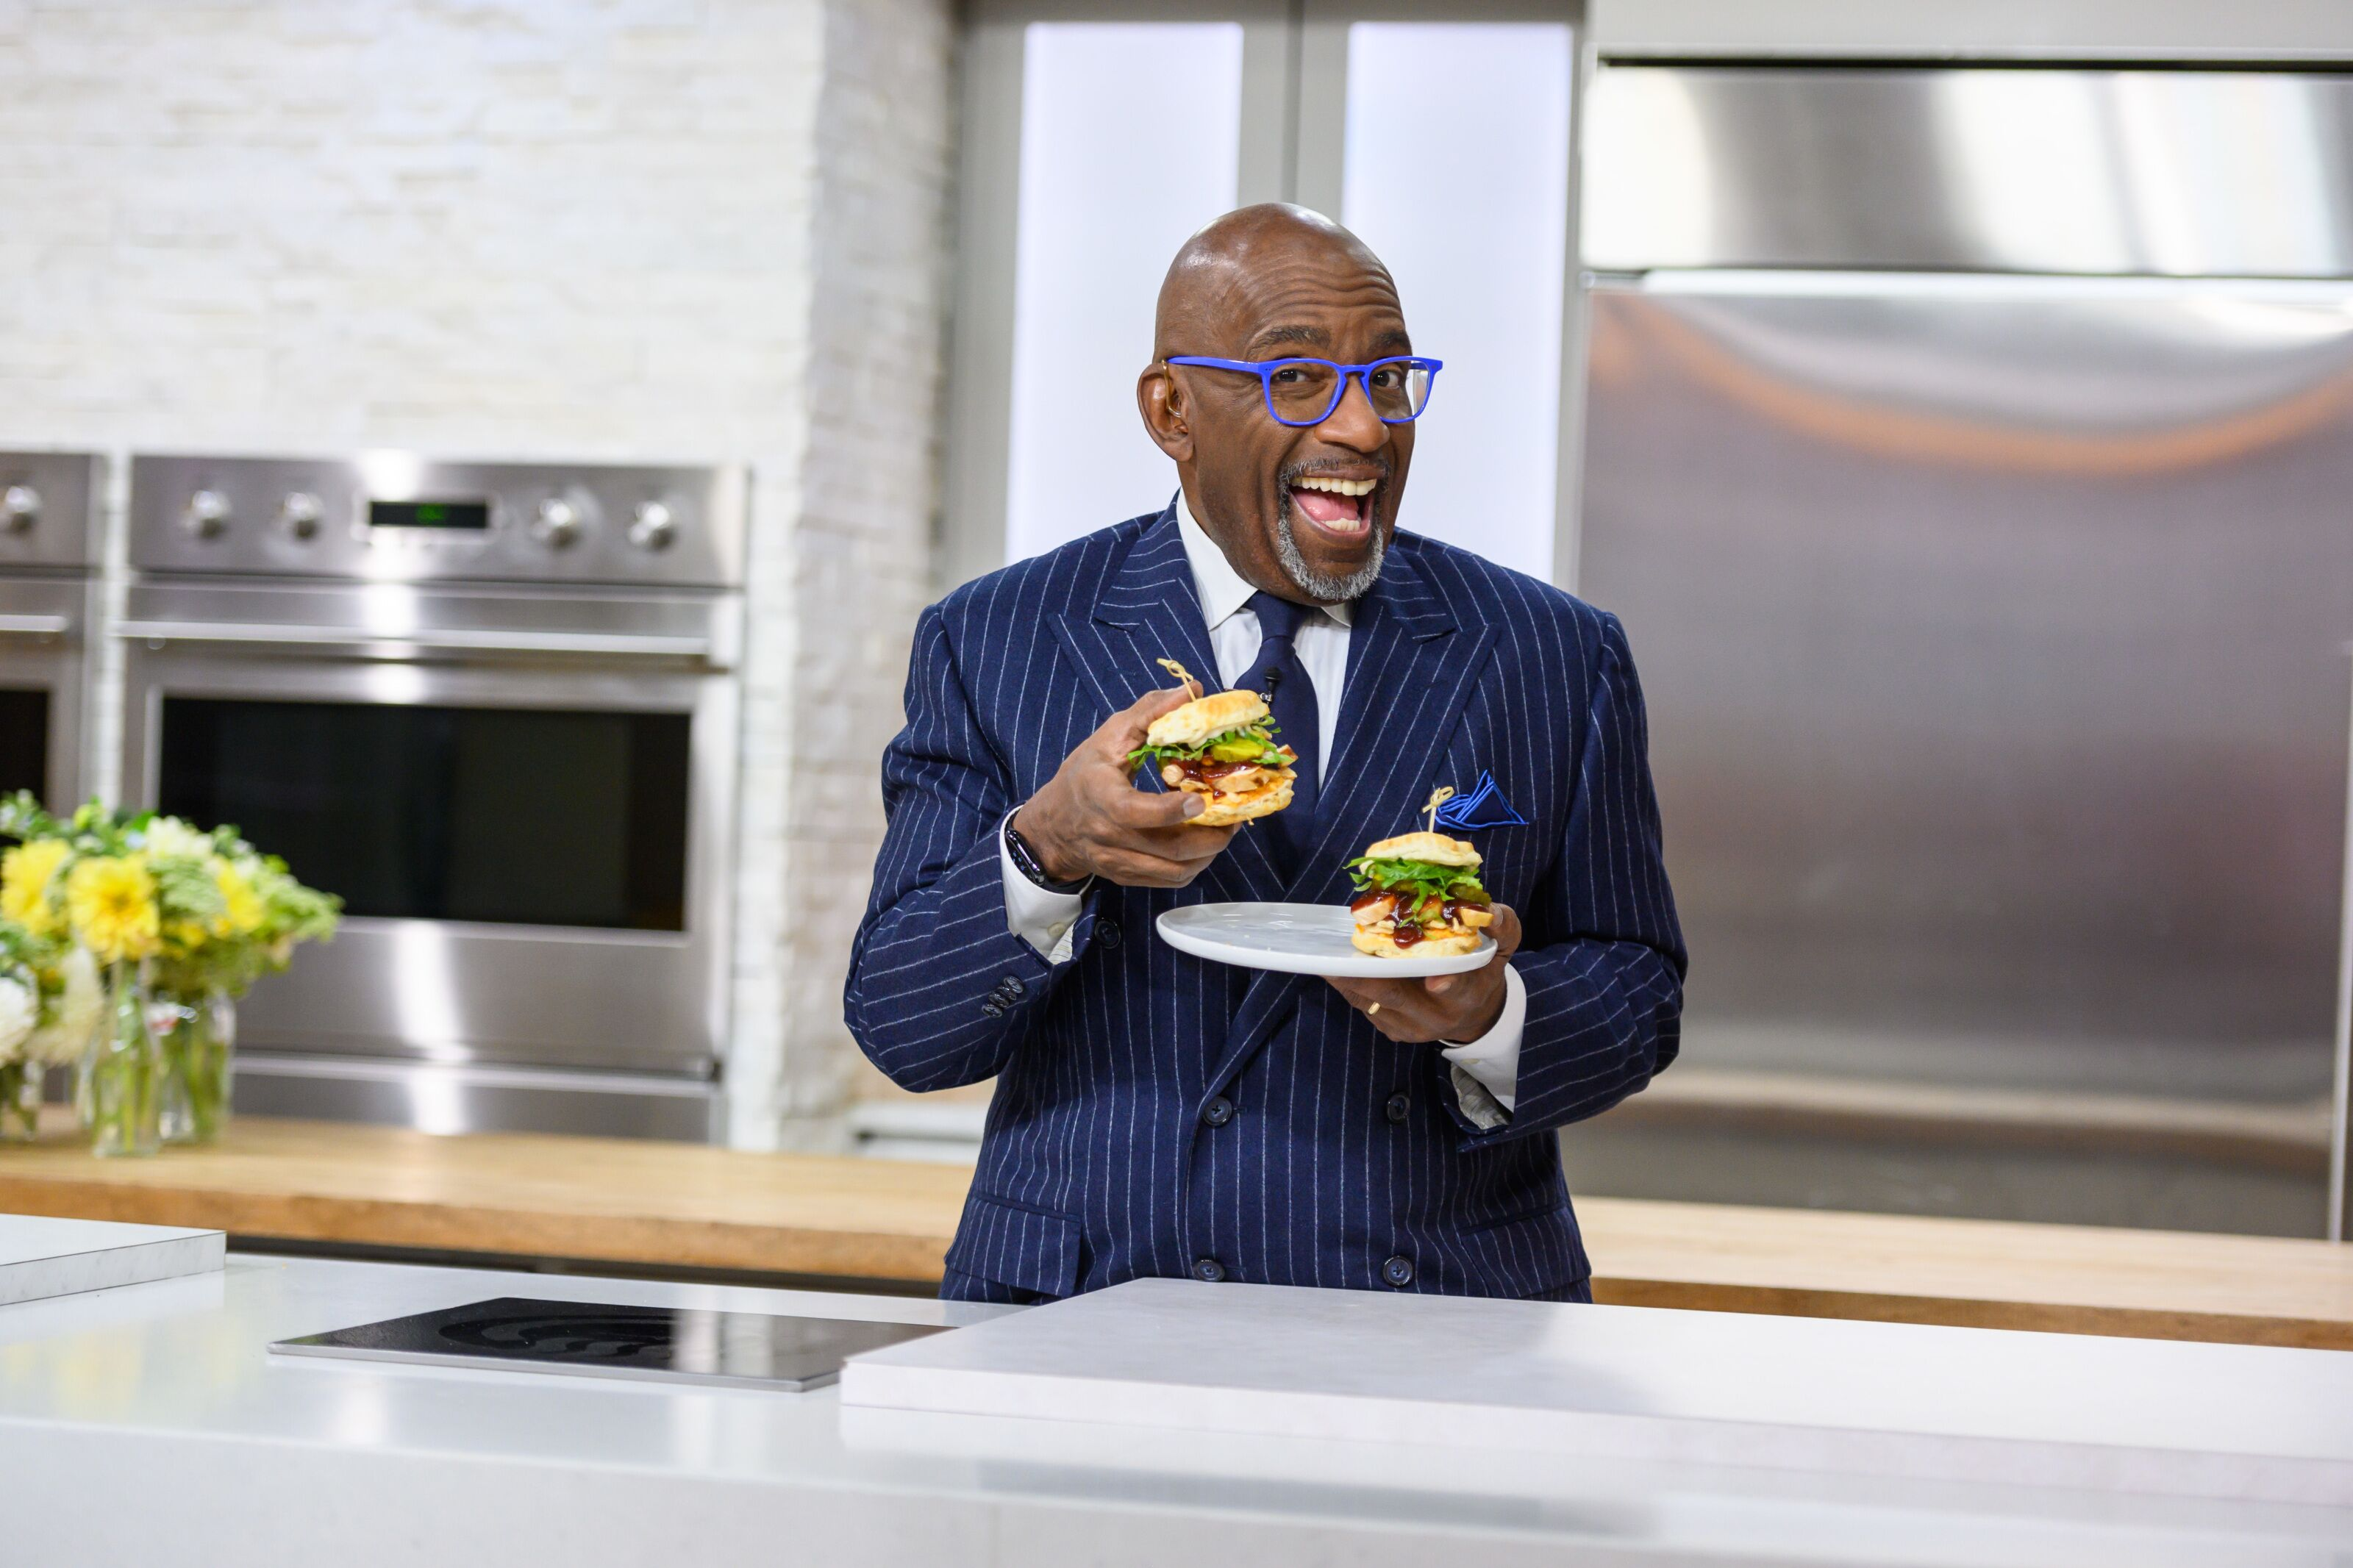 Al Roker wins the chicken sandwich wars with his Southern Chicken Biscuit Sliders